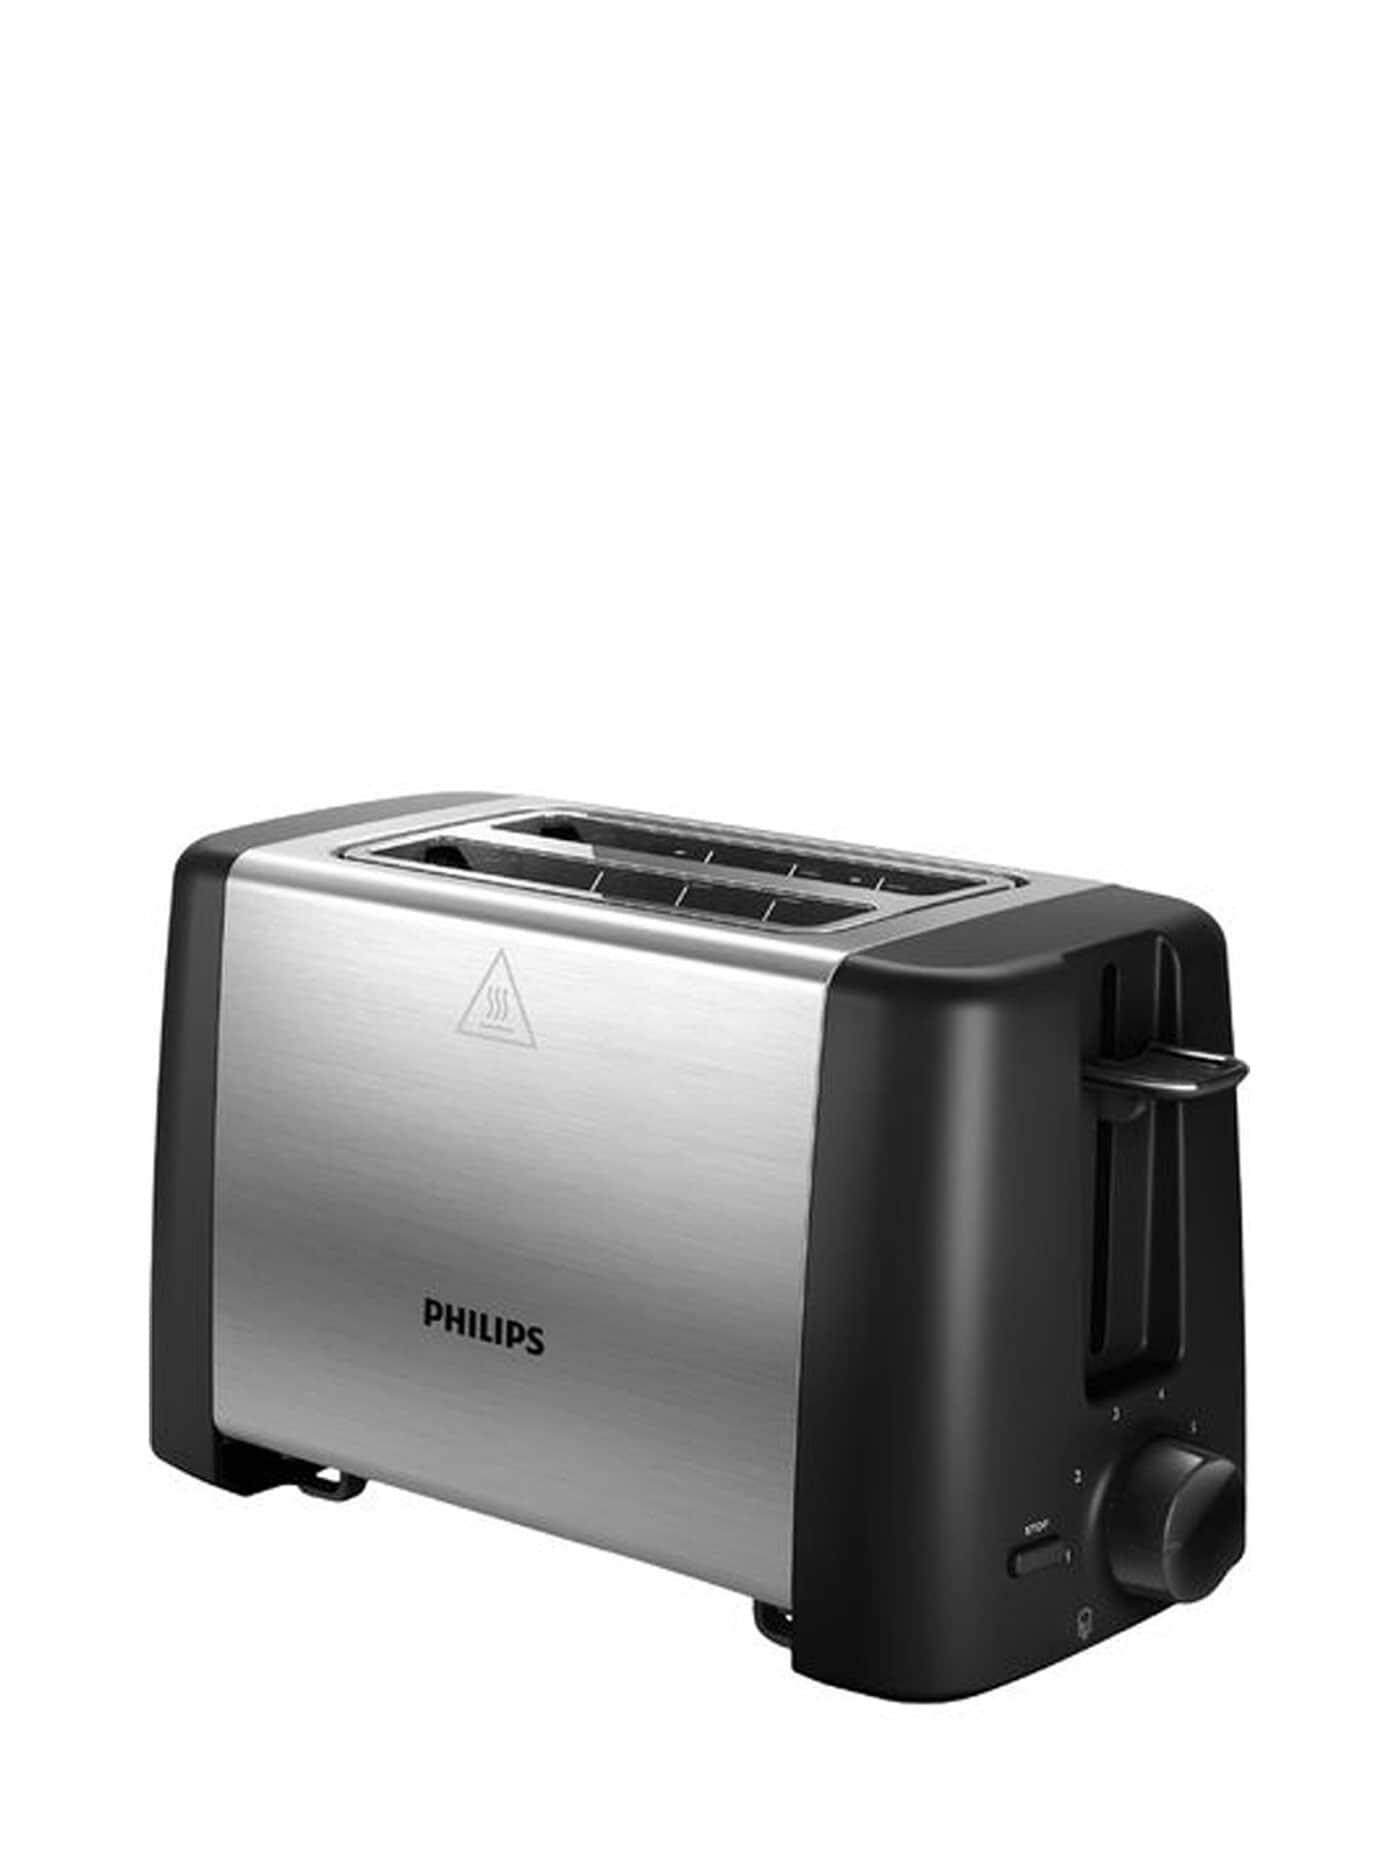 ตาก PHILIPS 2-Slot Toaster Hd4825 Silver-Black toasters sandwich makers